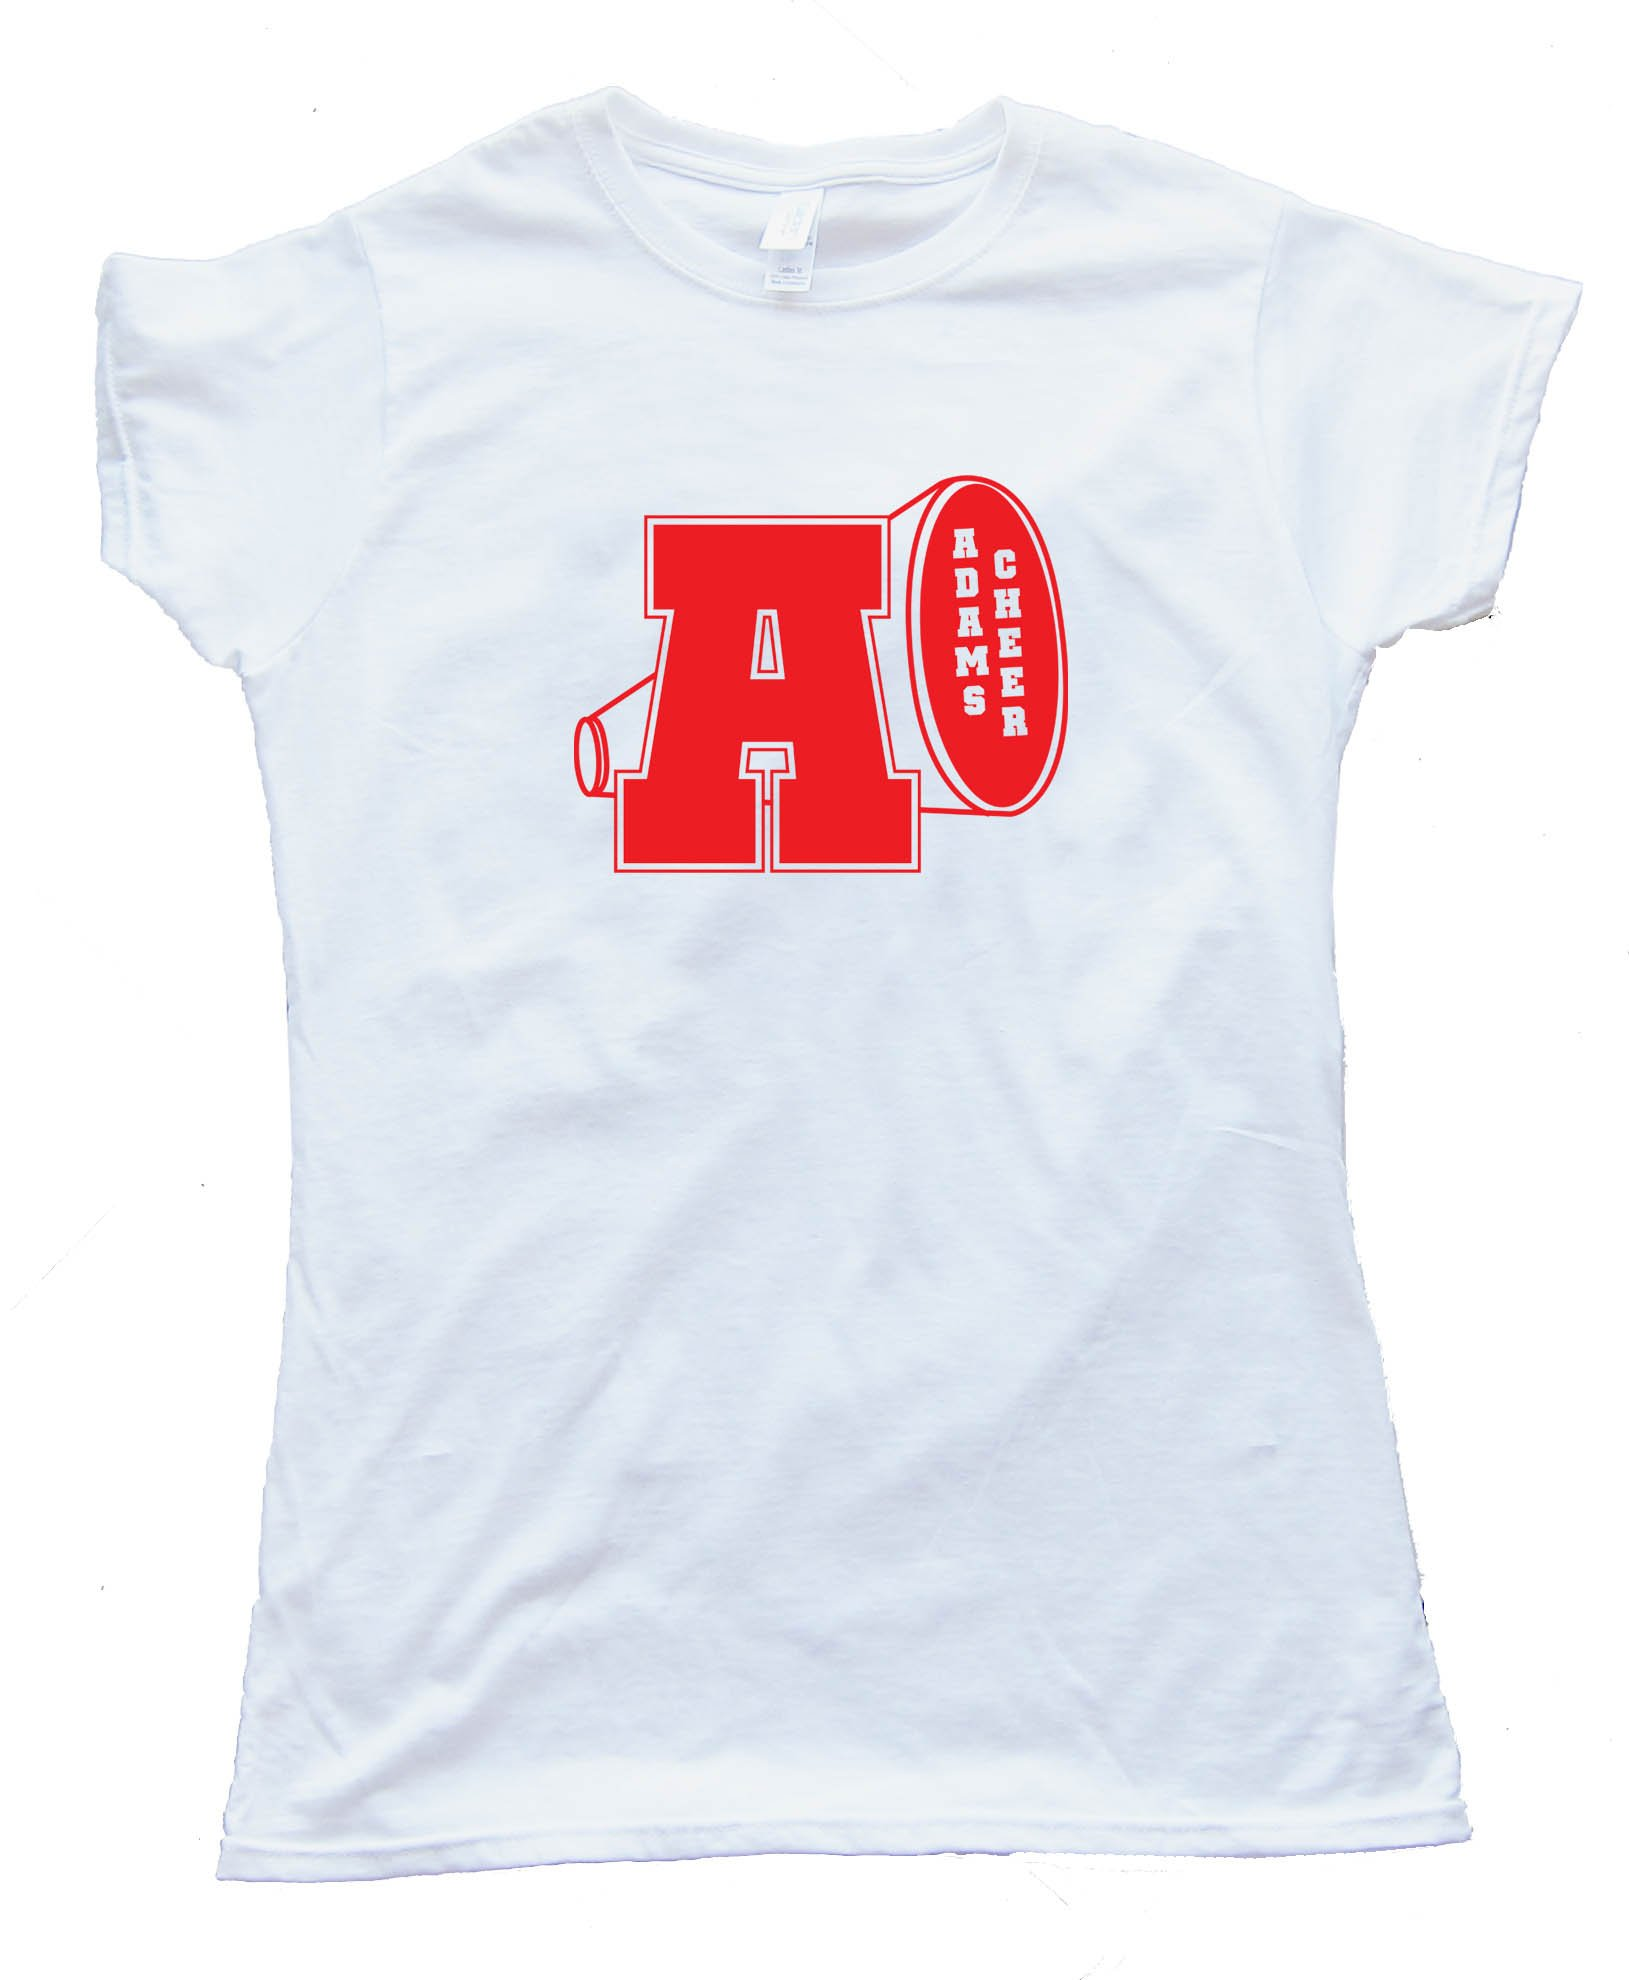 Adams Cheerleading Revenge Of The Nerds Cheerleaders - Tee Shirt